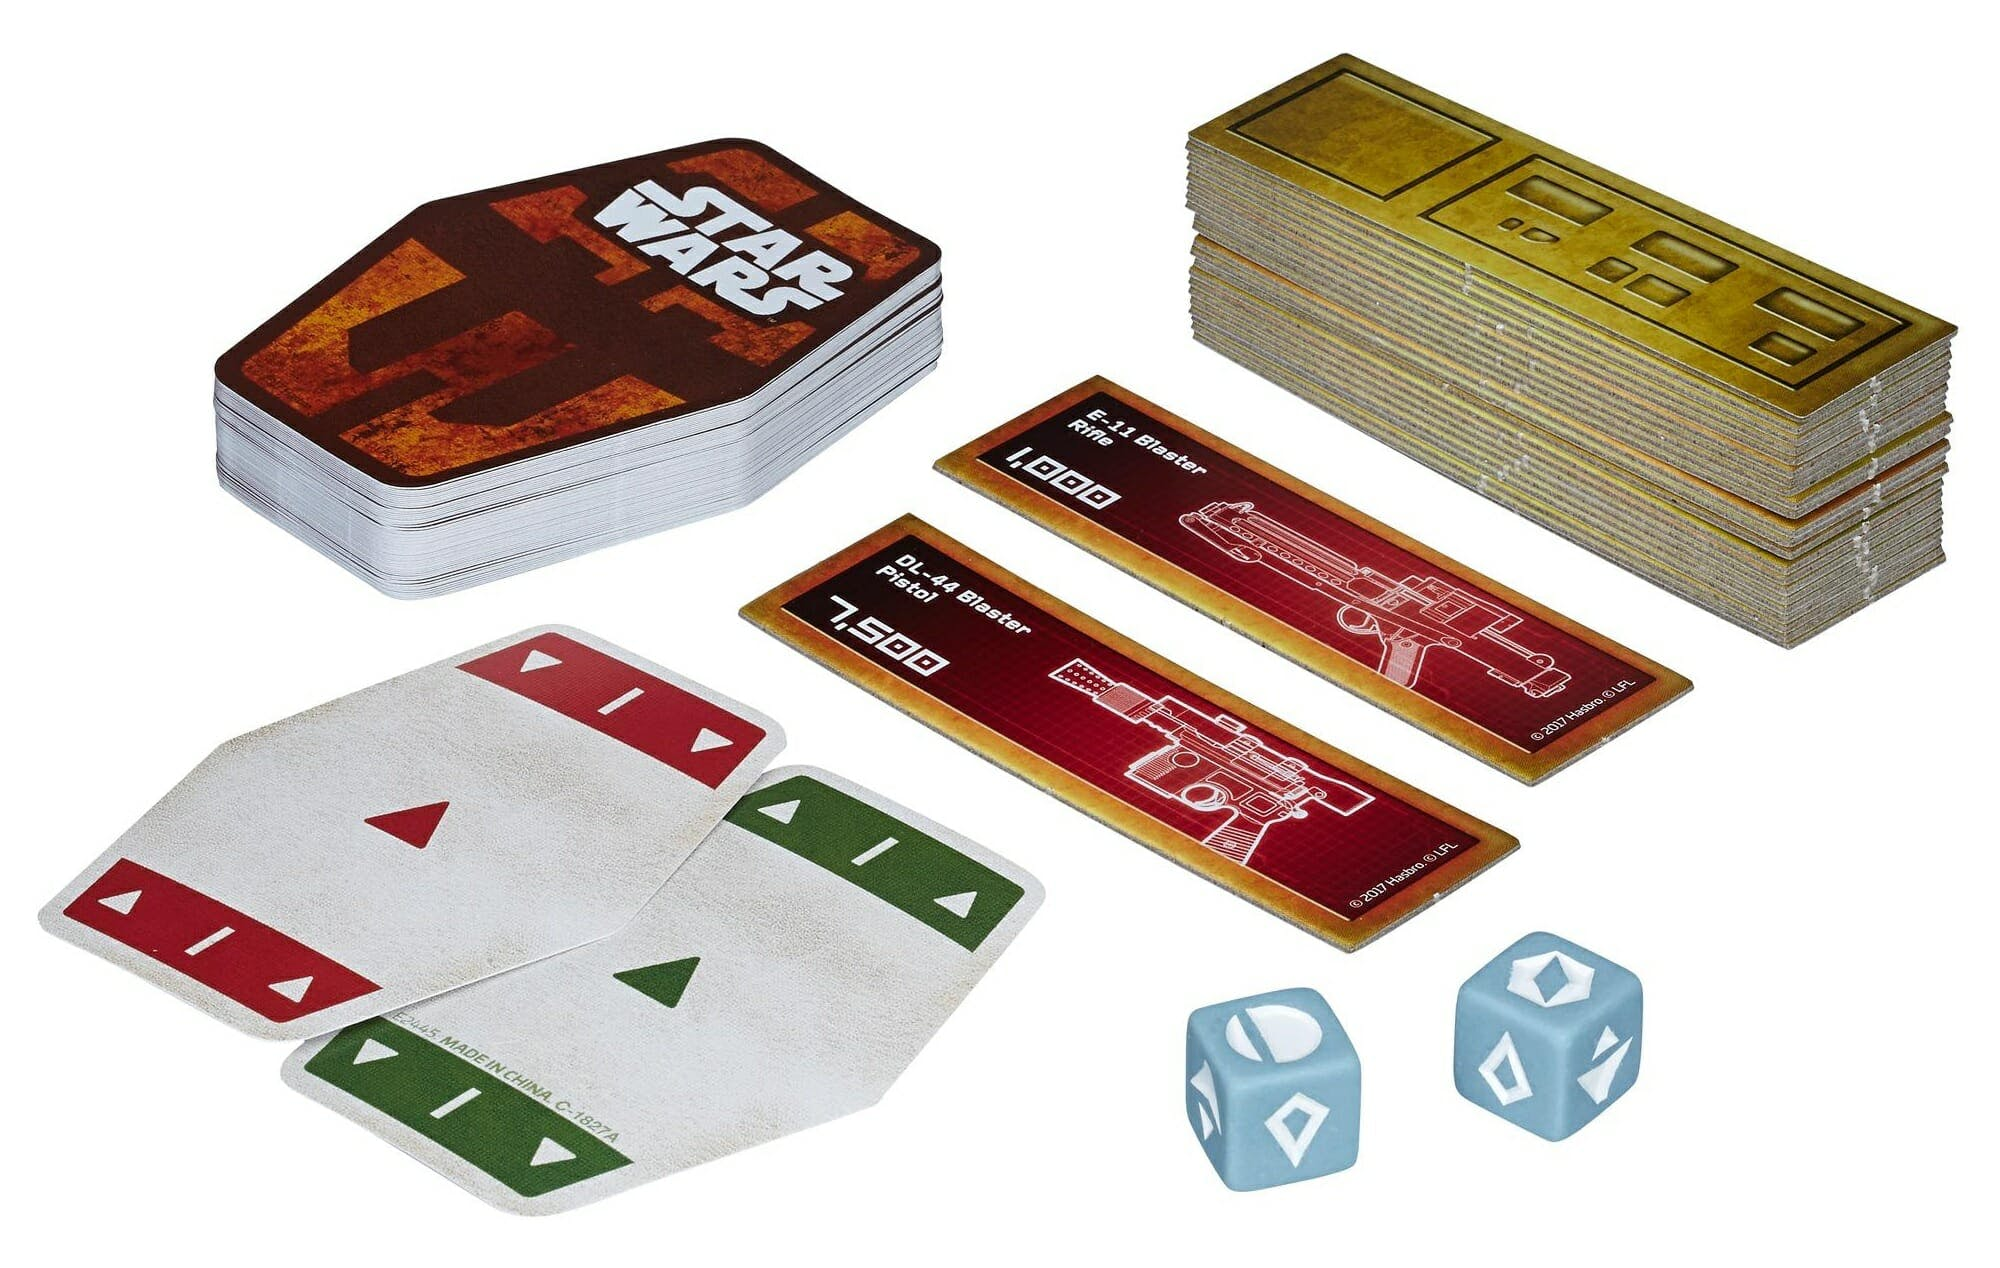 Sabacc, the han solo card game